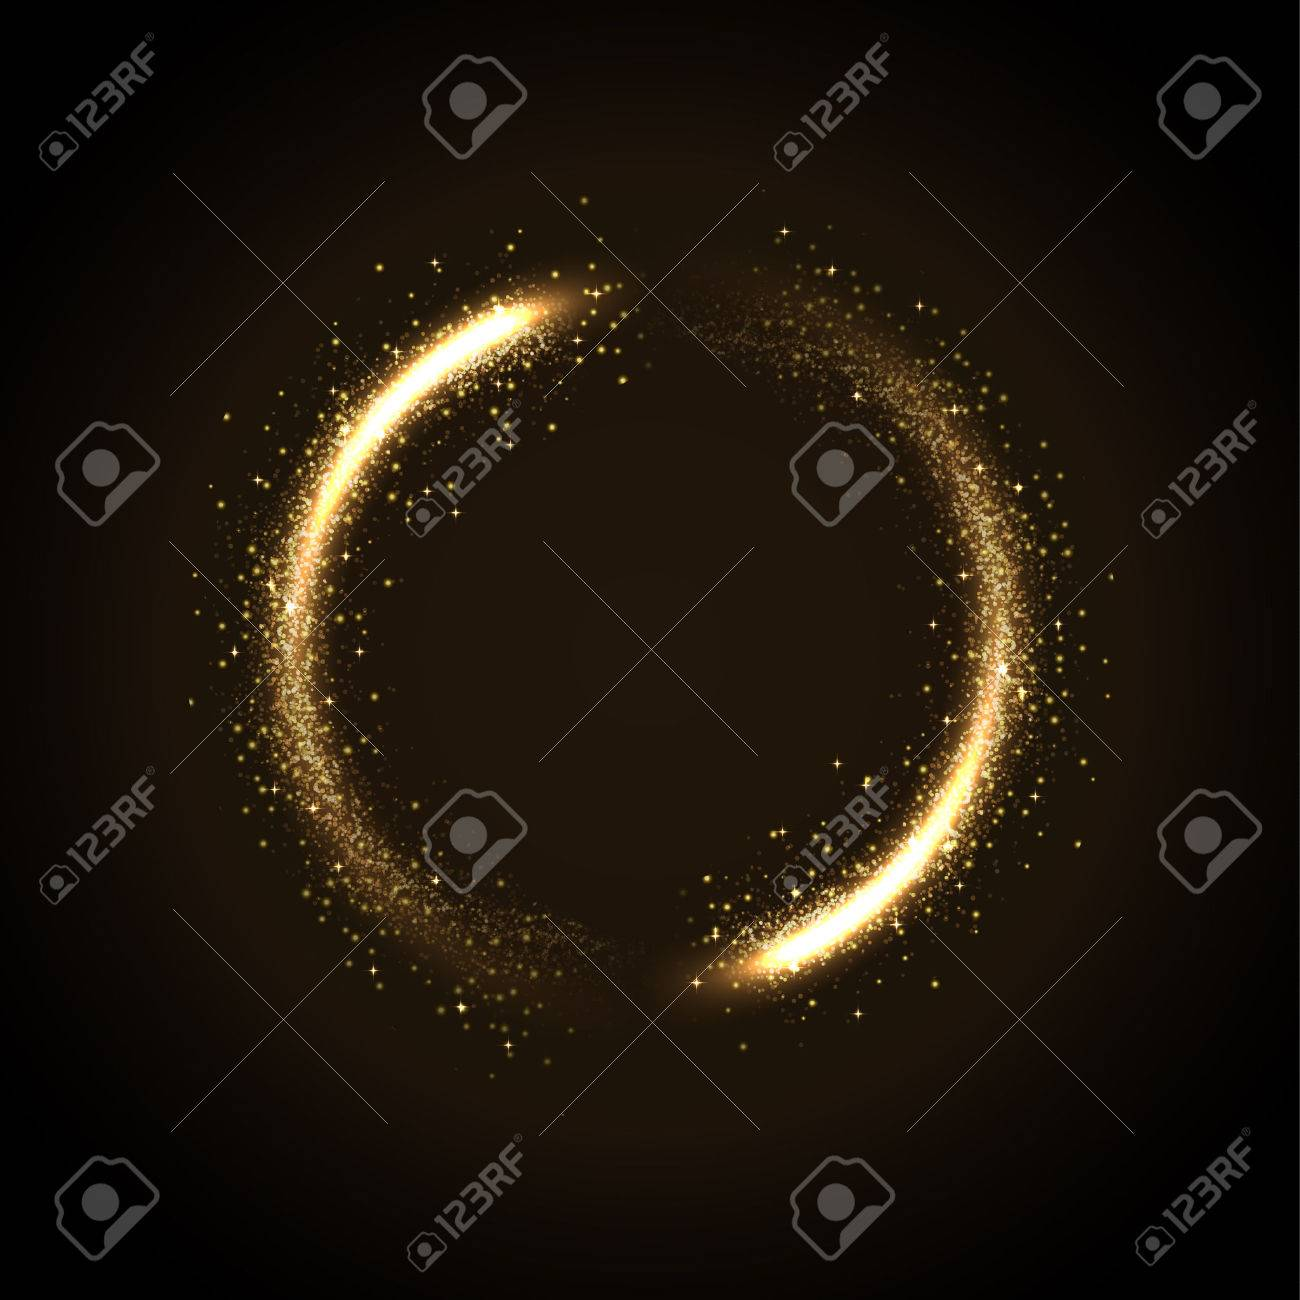 illustration of glowing dust from glittering stras - 51106354